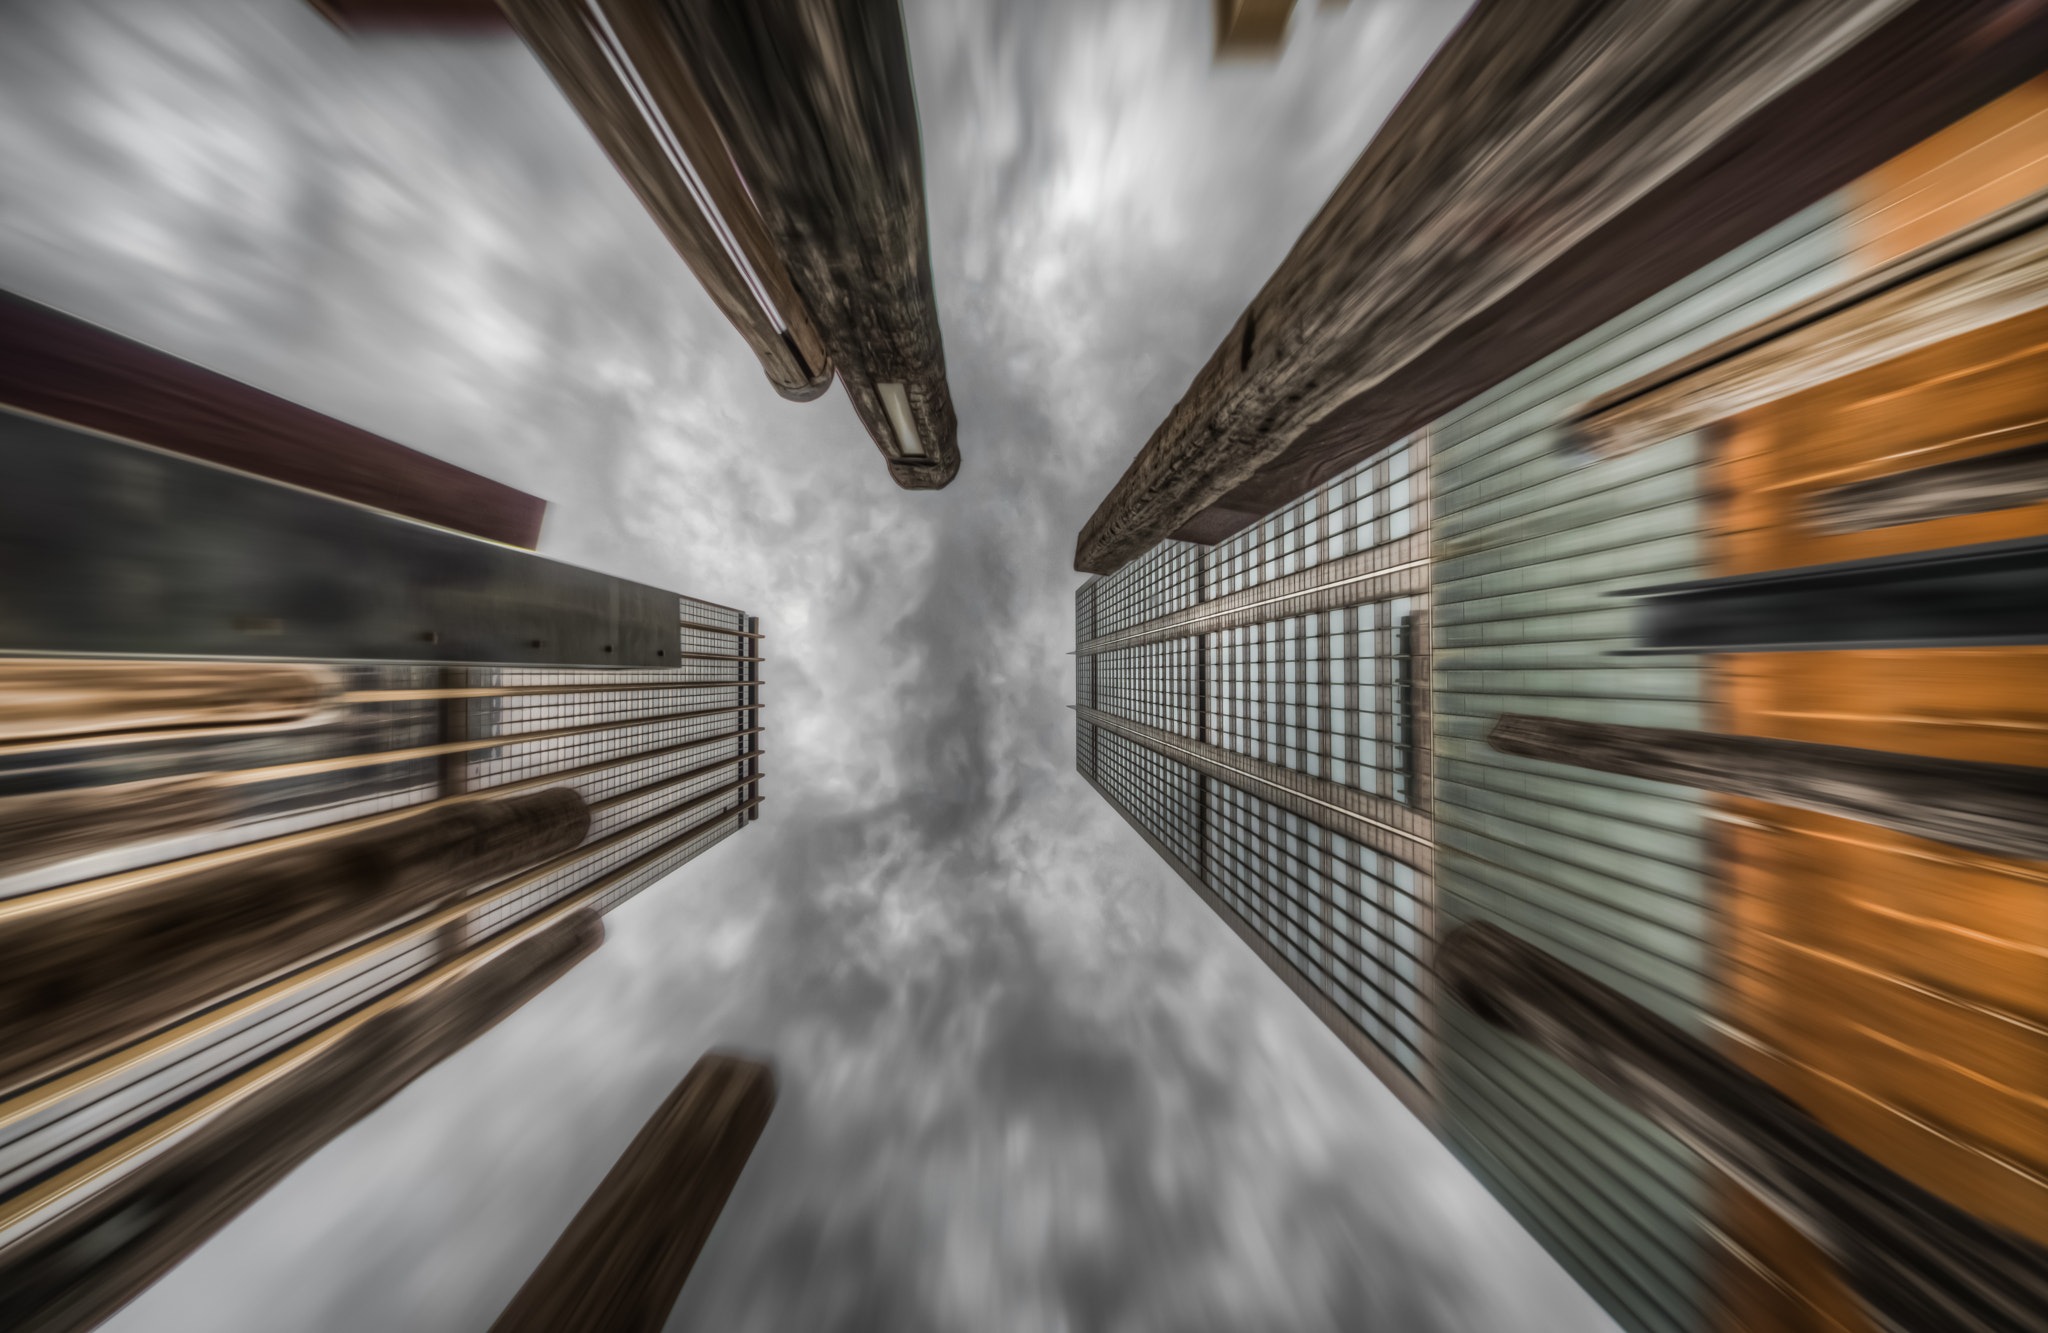 Photograph Up in the sky - hyper speed by Jacob Surland on 500px